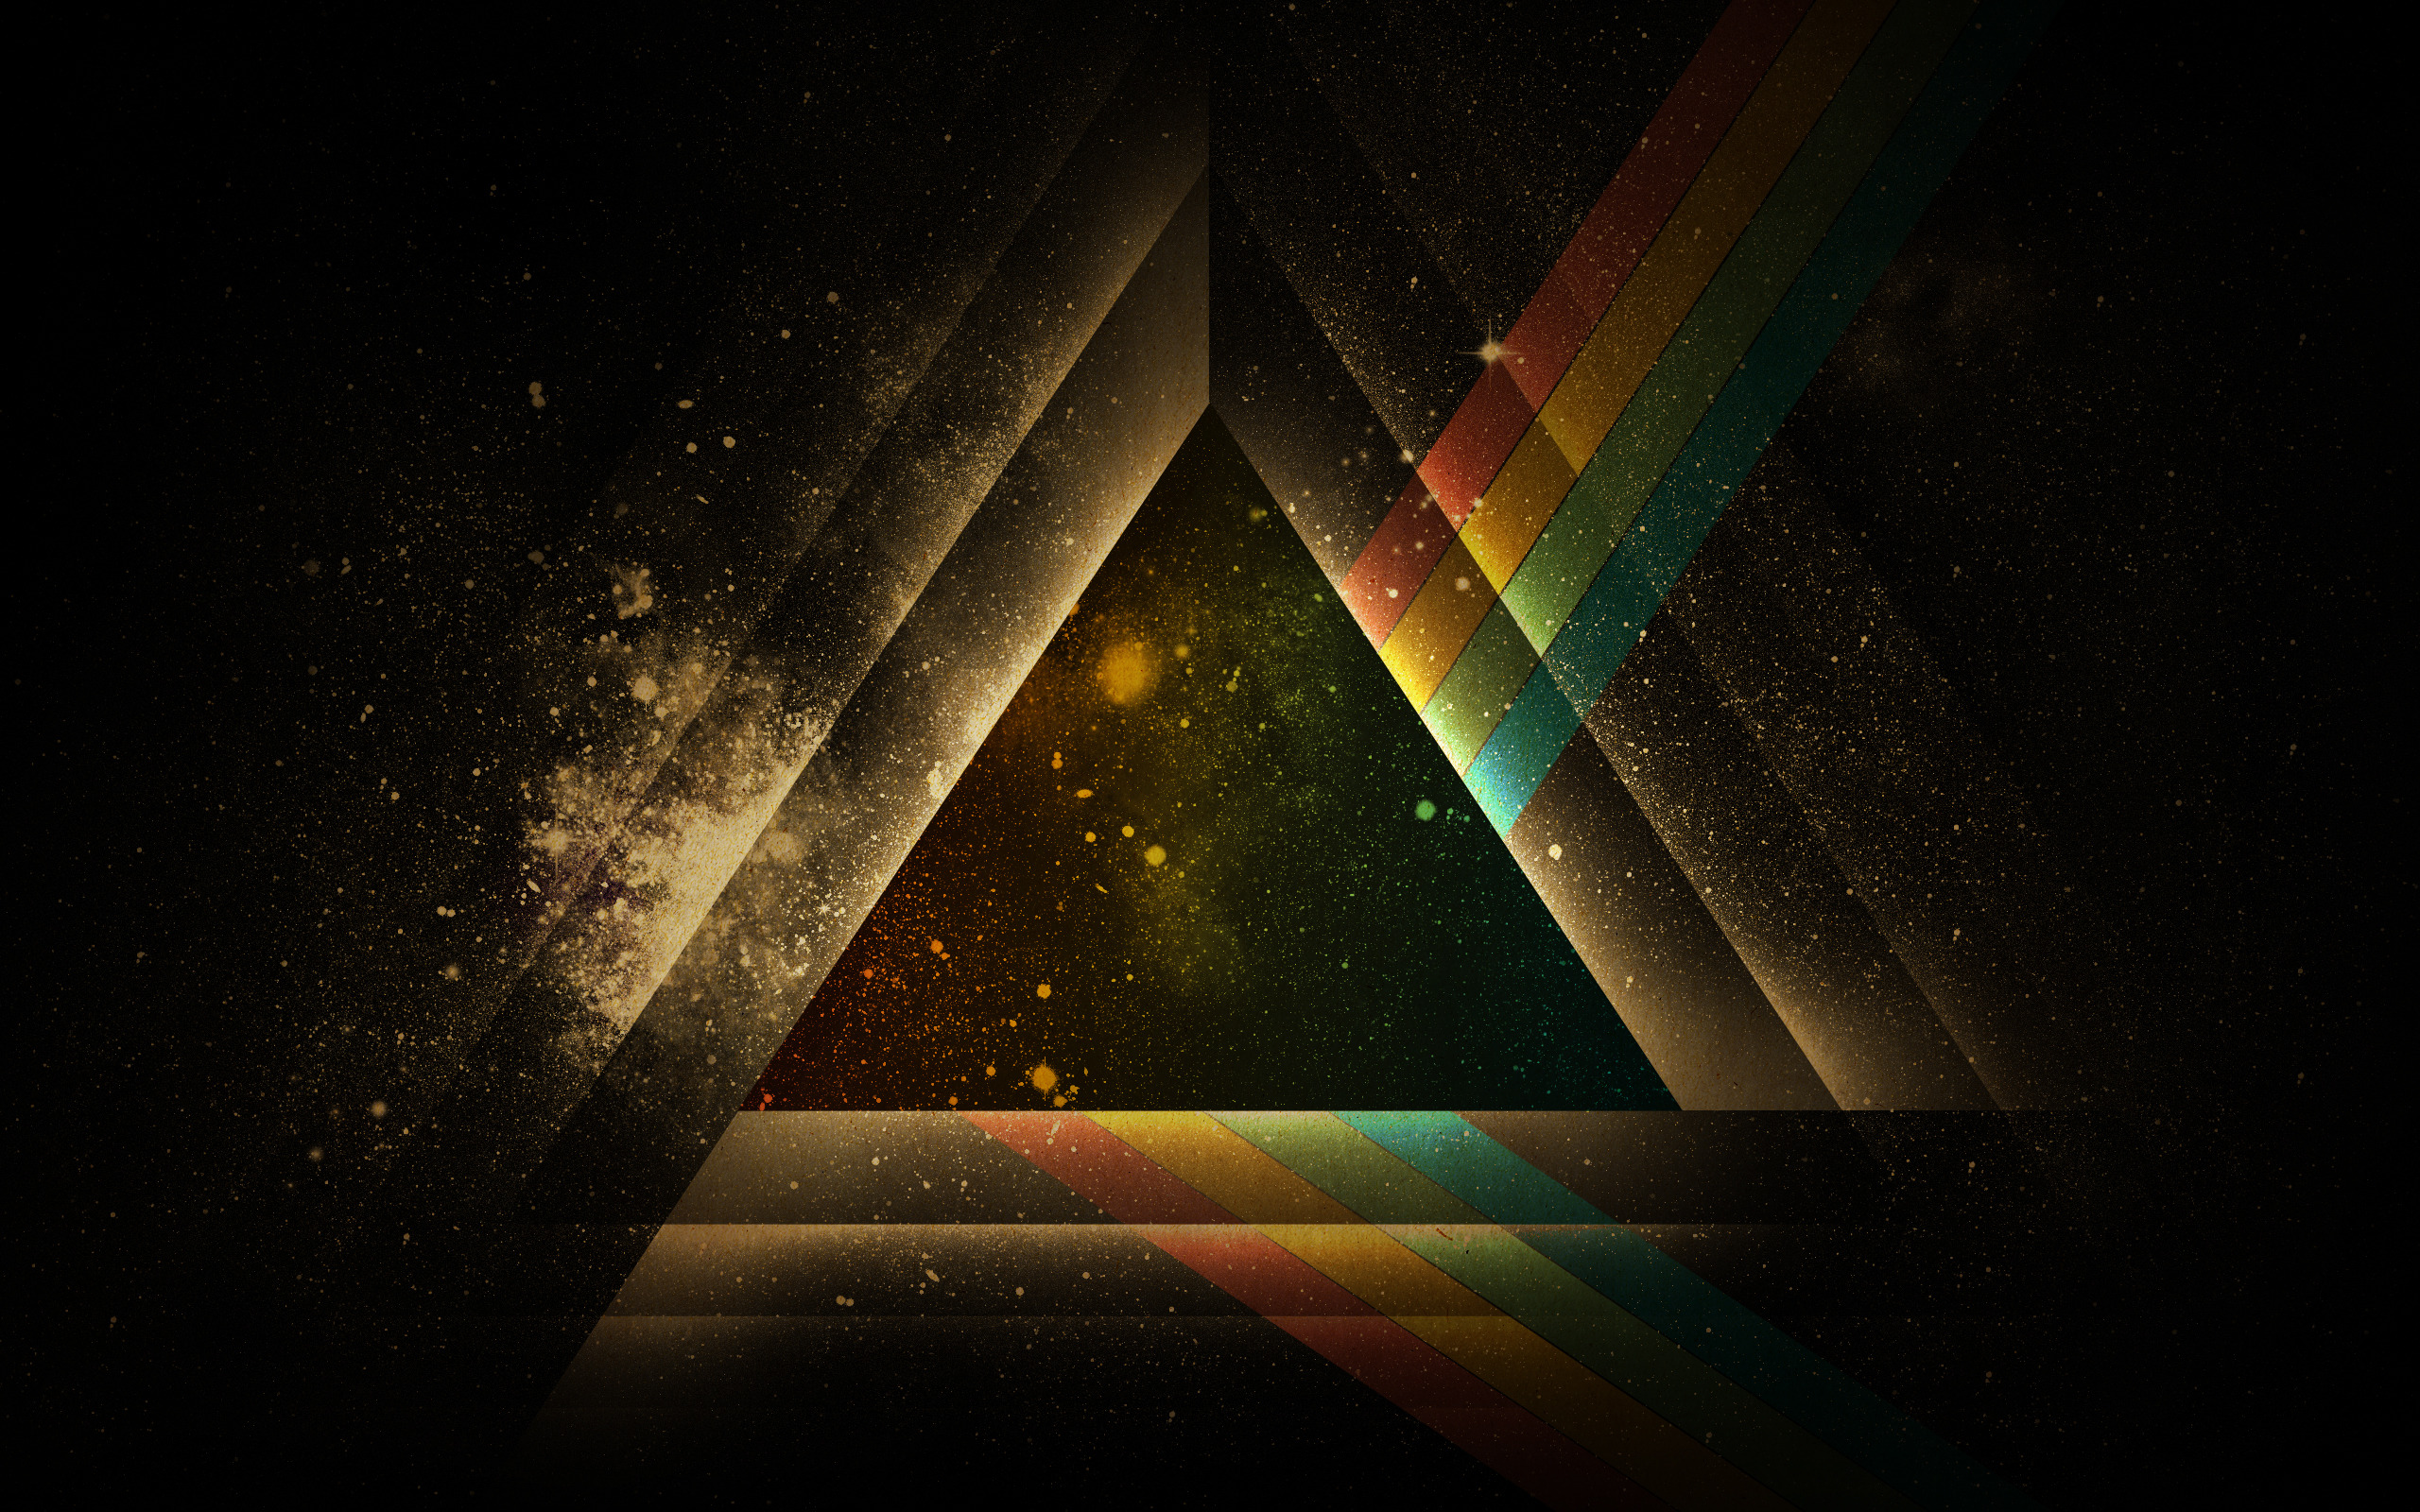 White Geometric Triangle Wallpaper 14